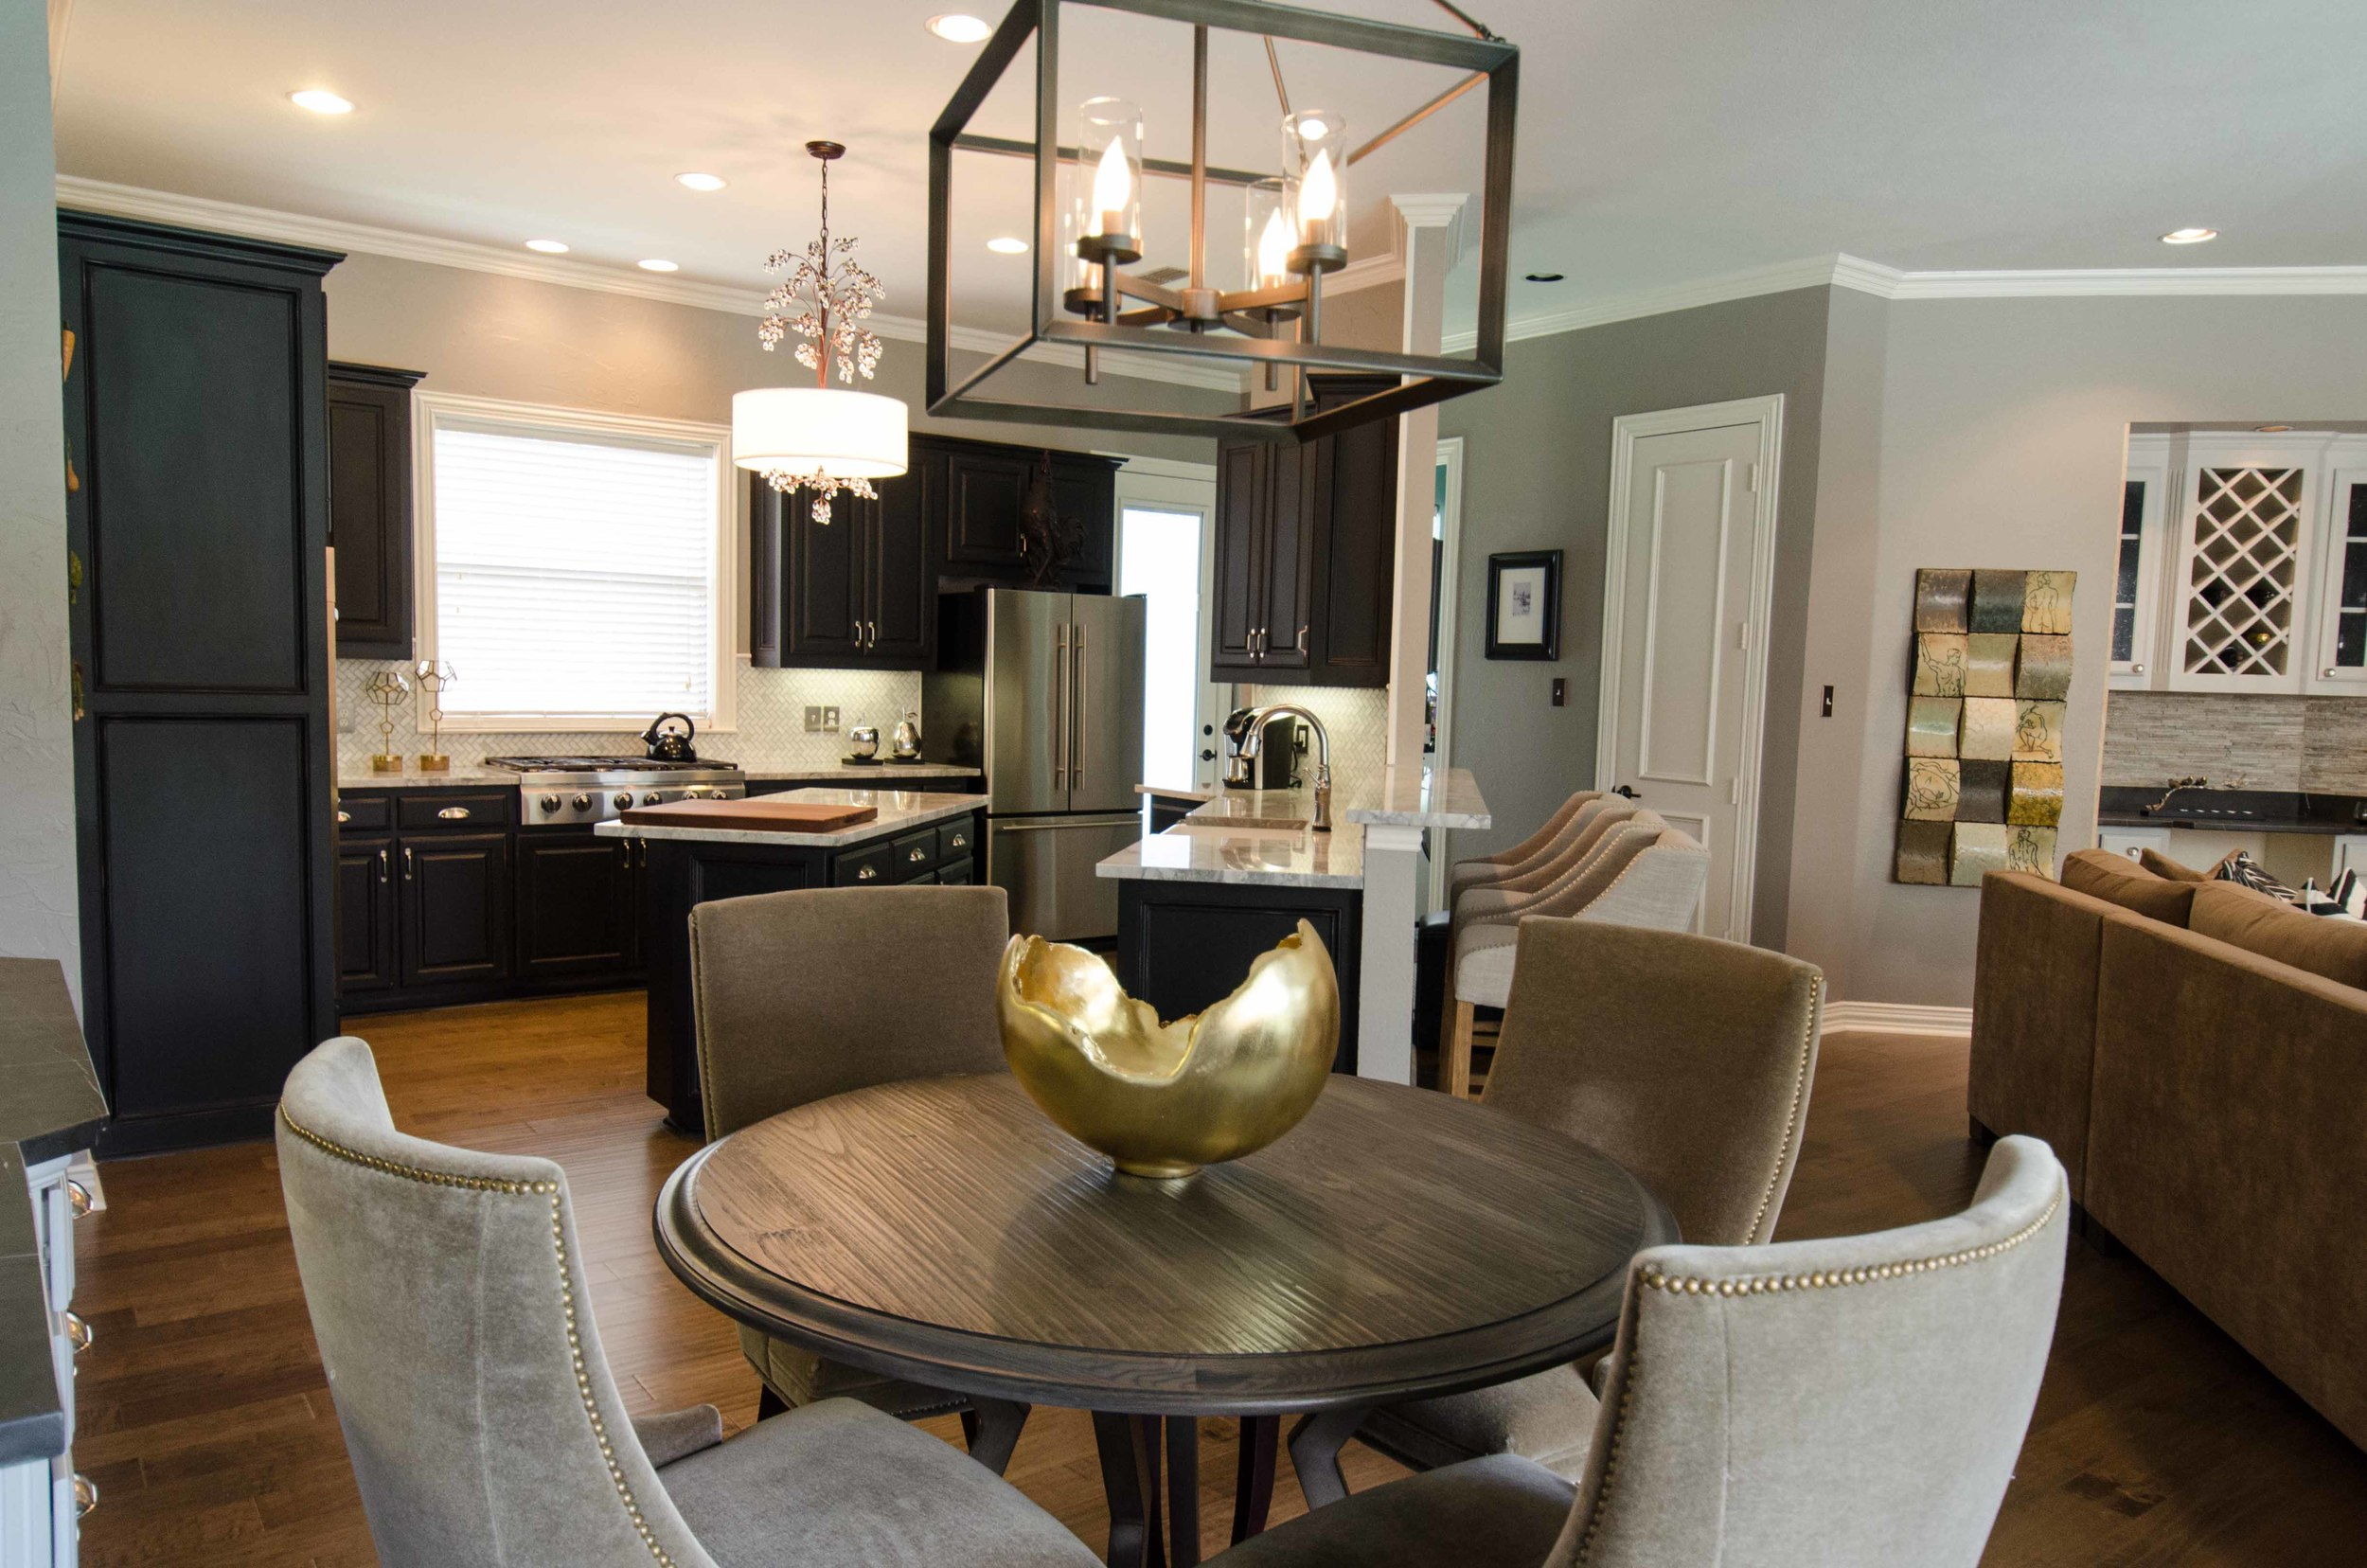 Traditional interior design with an open concept